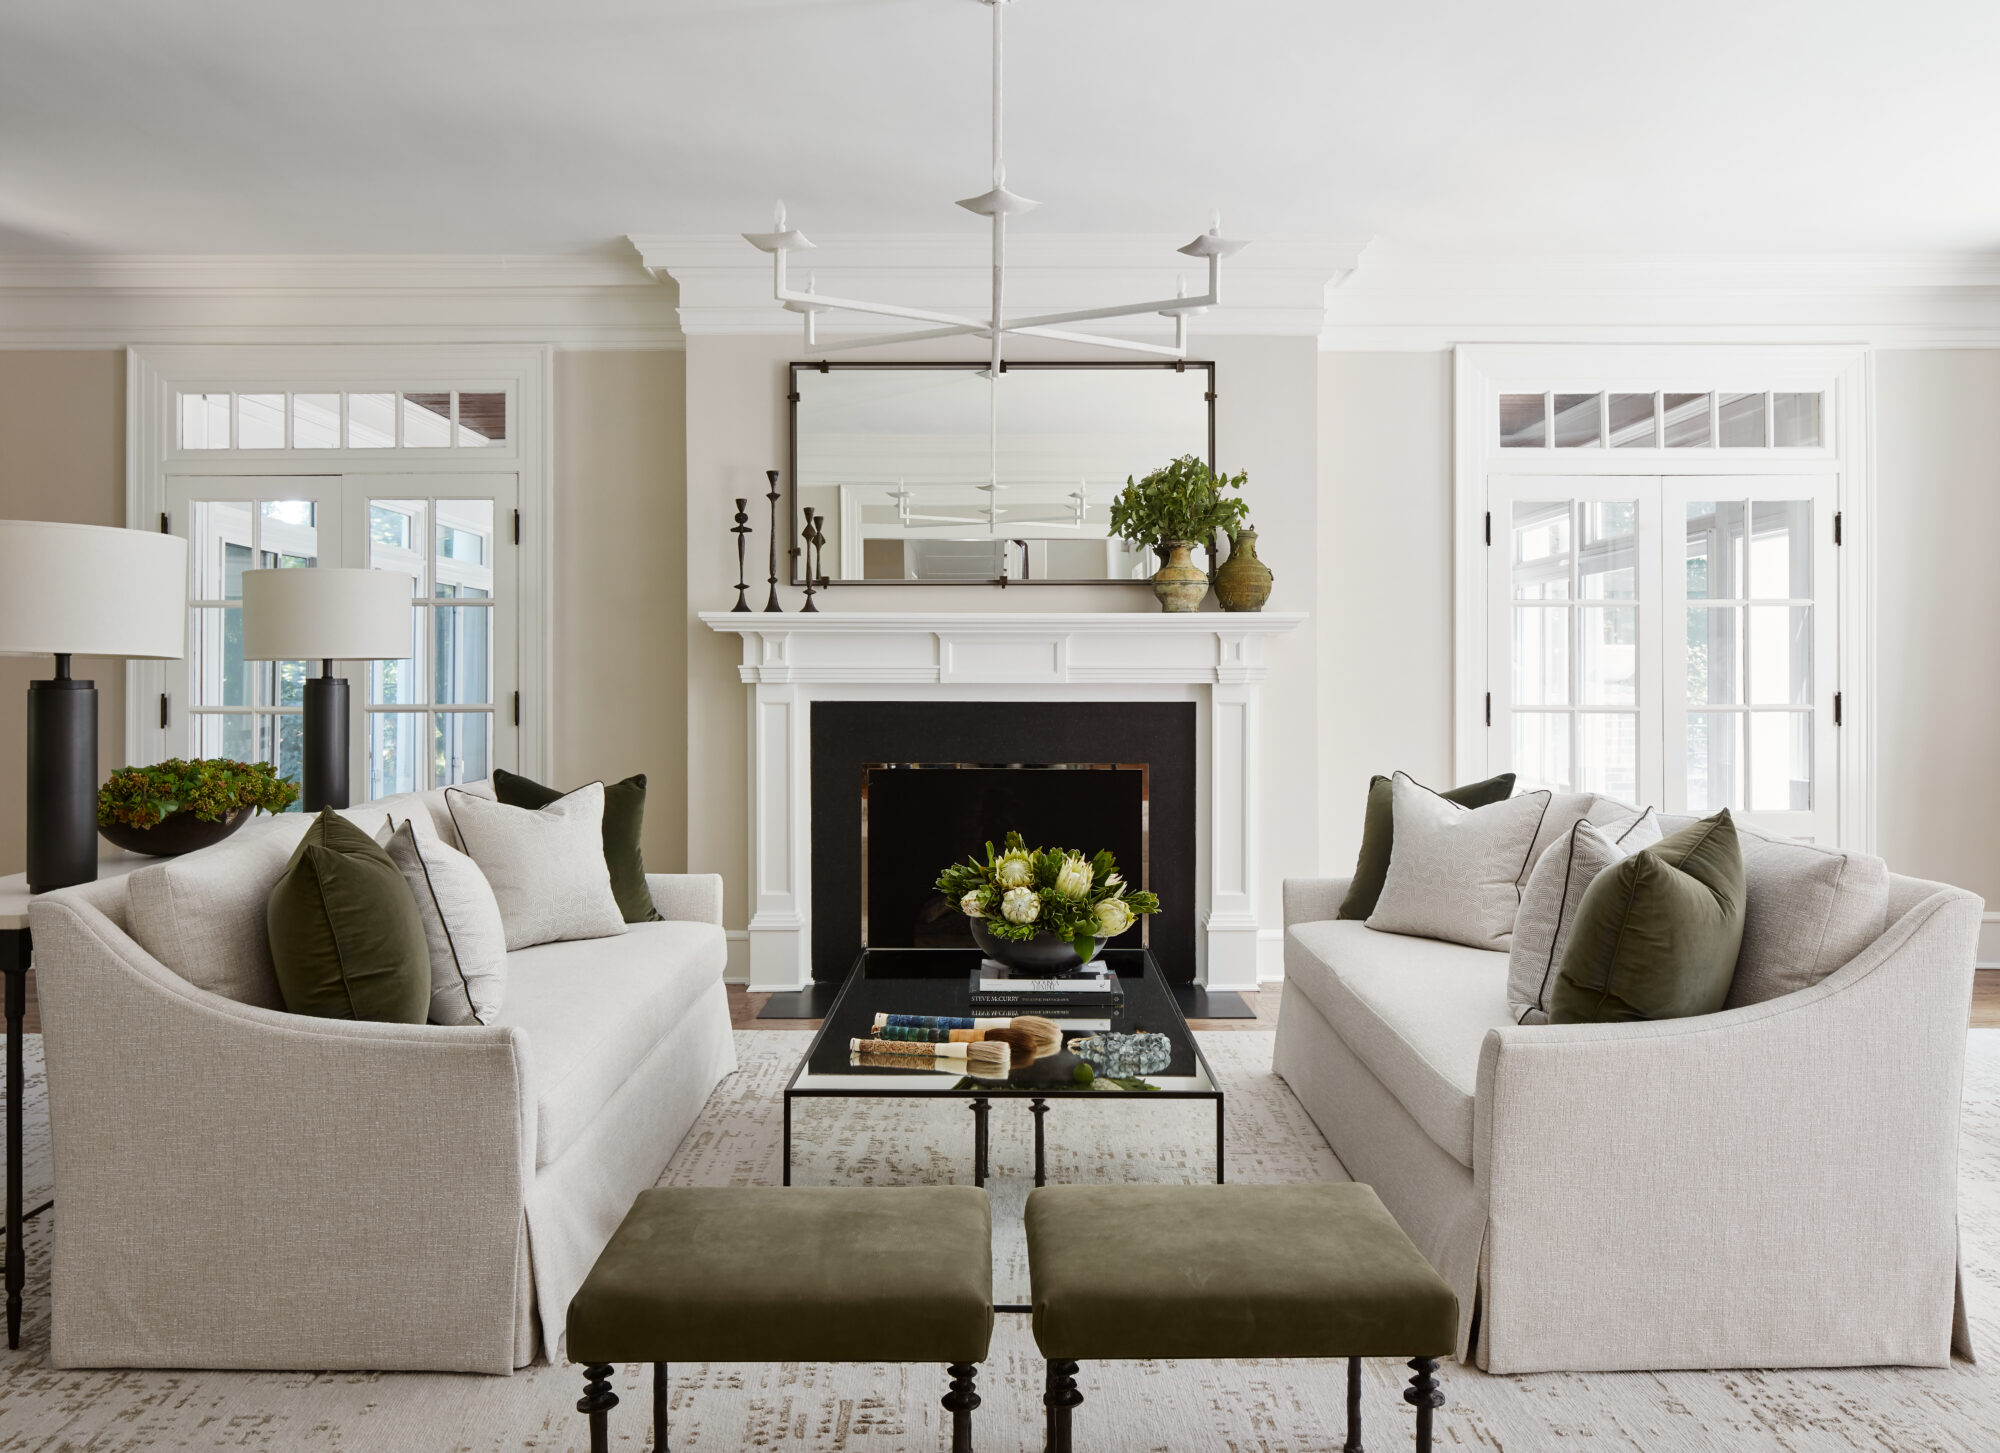 neutral living area with green accents, stools and pillows